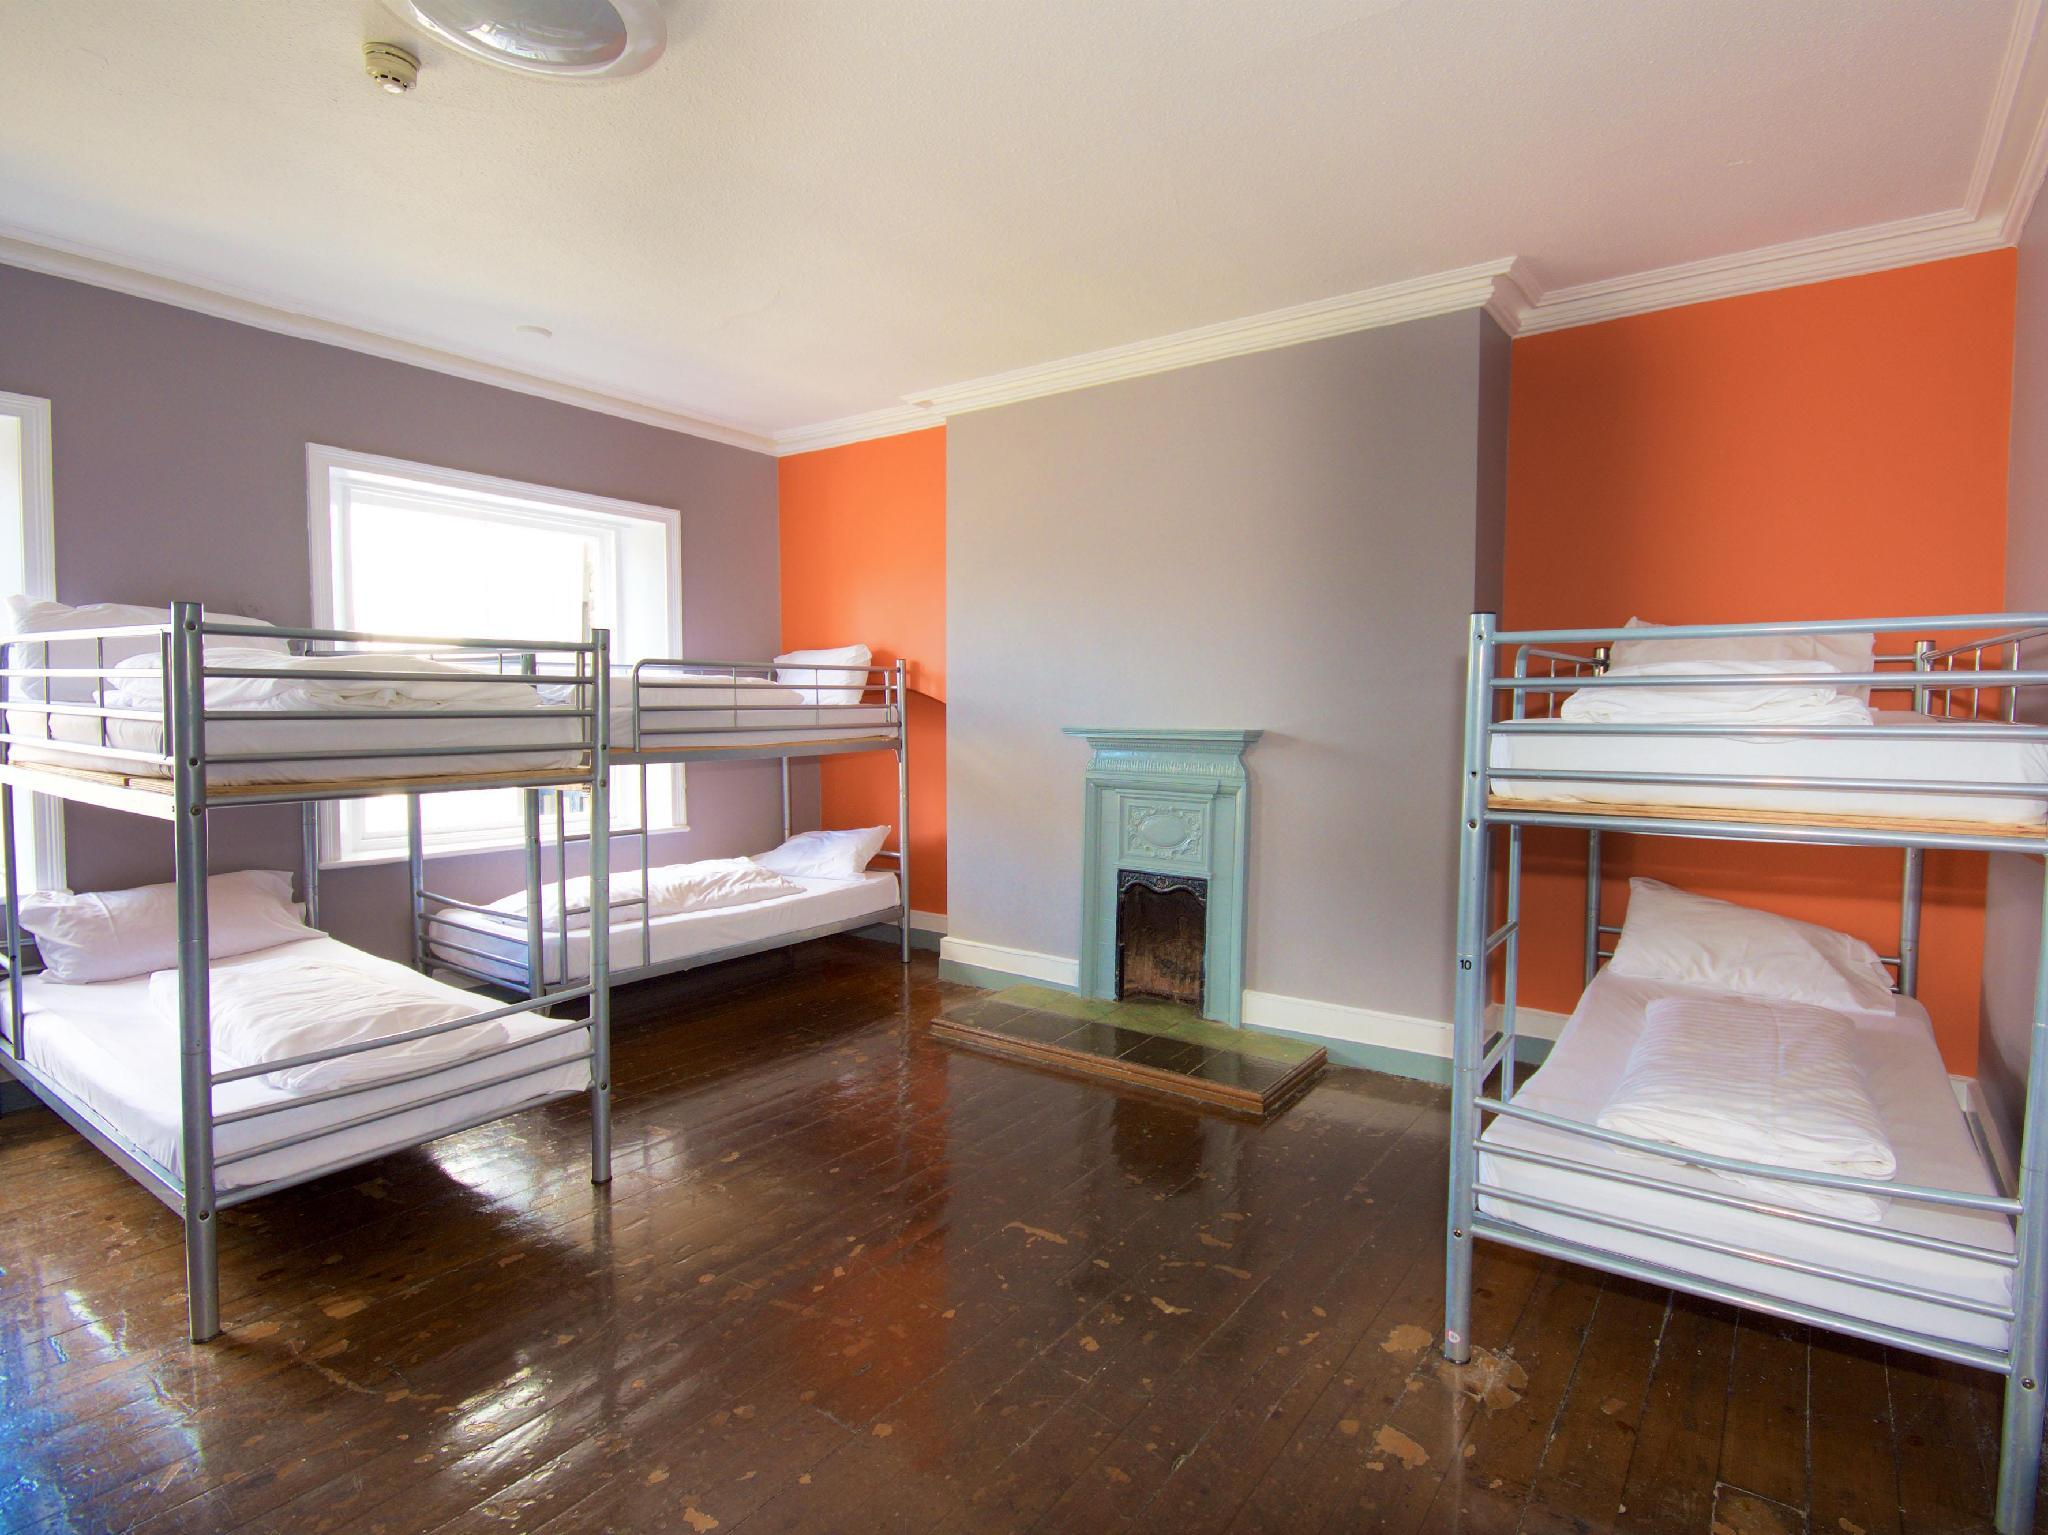 1 persona en dormitori compartit de 8 llits ‒ Mixt (1 Person in 8-Bed Dormitory - Mixed)